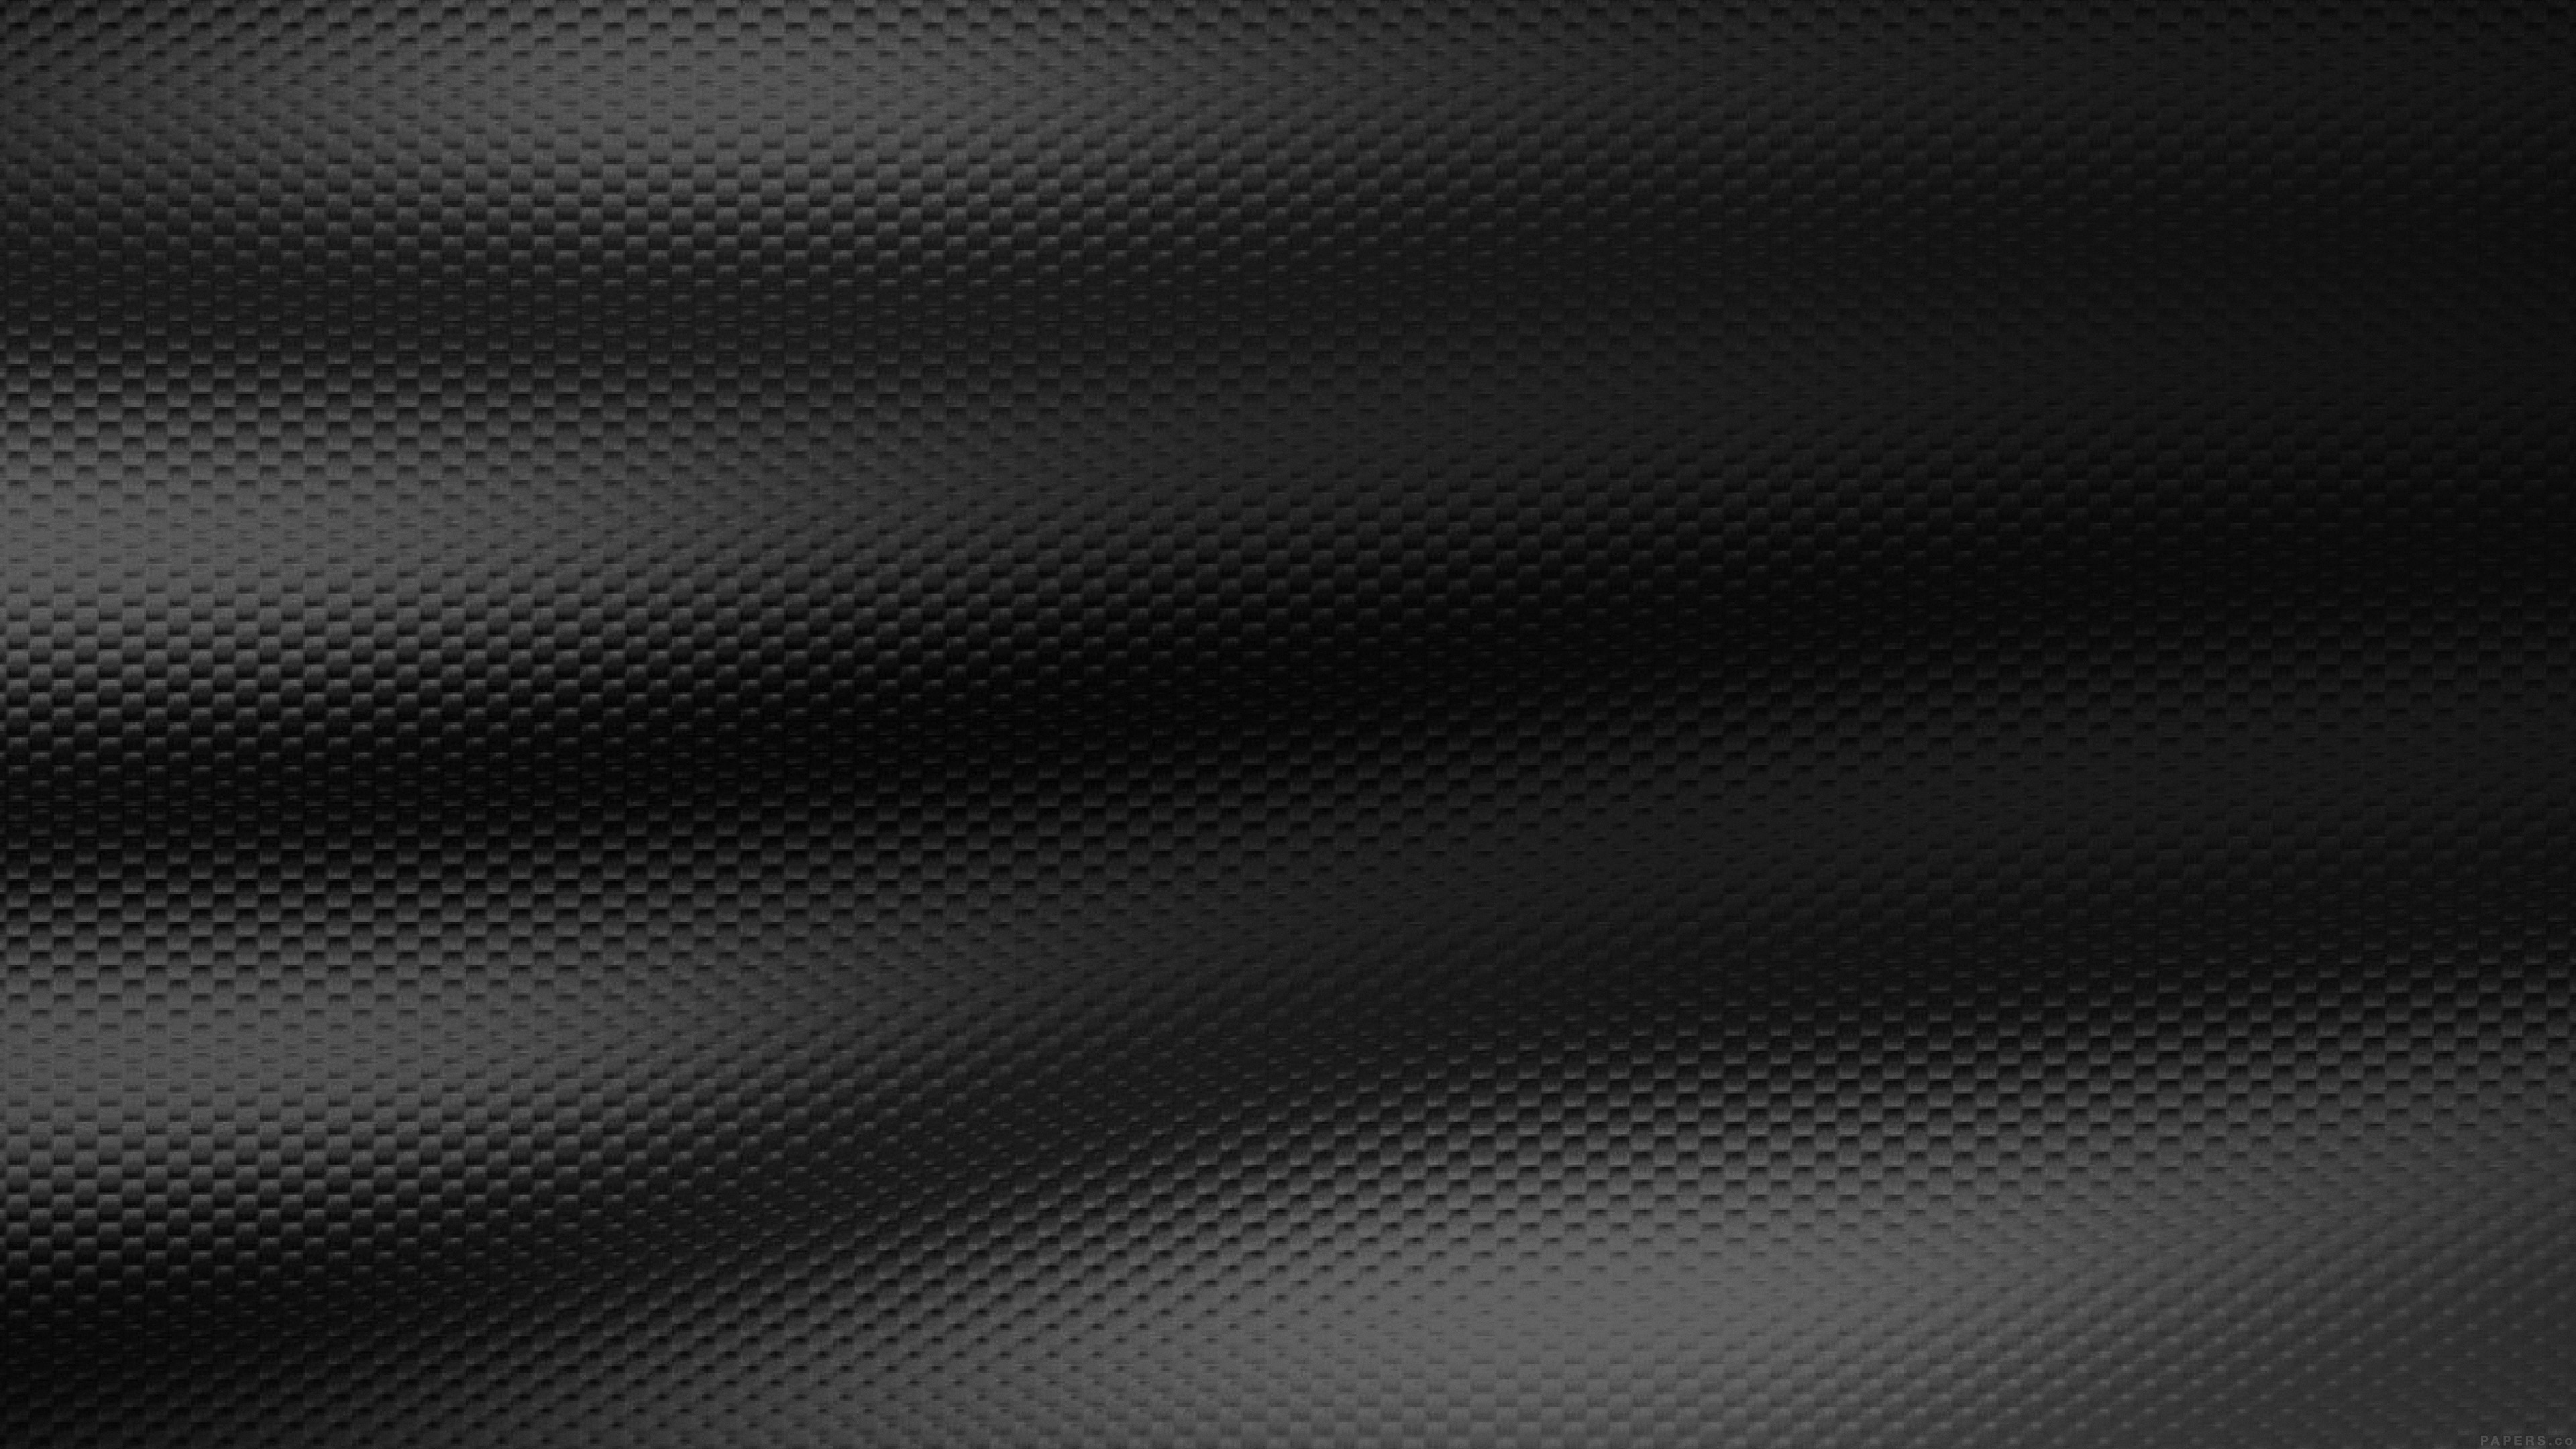 Wallpaper Cute Owl Hd Vh03 Fabric Texture Dark Bw Black Pattern Papers Co